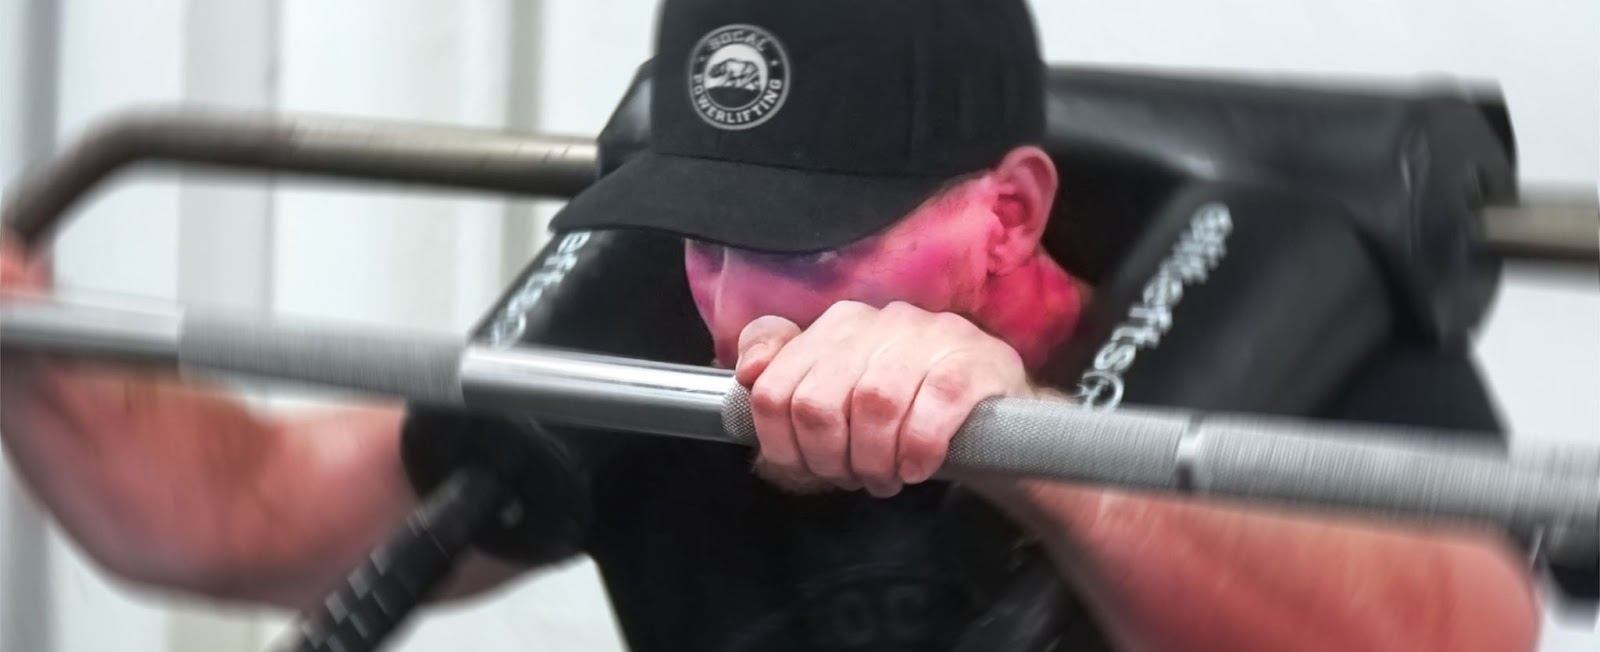 close up to man's face while squatting. his face is comically red from exertion.